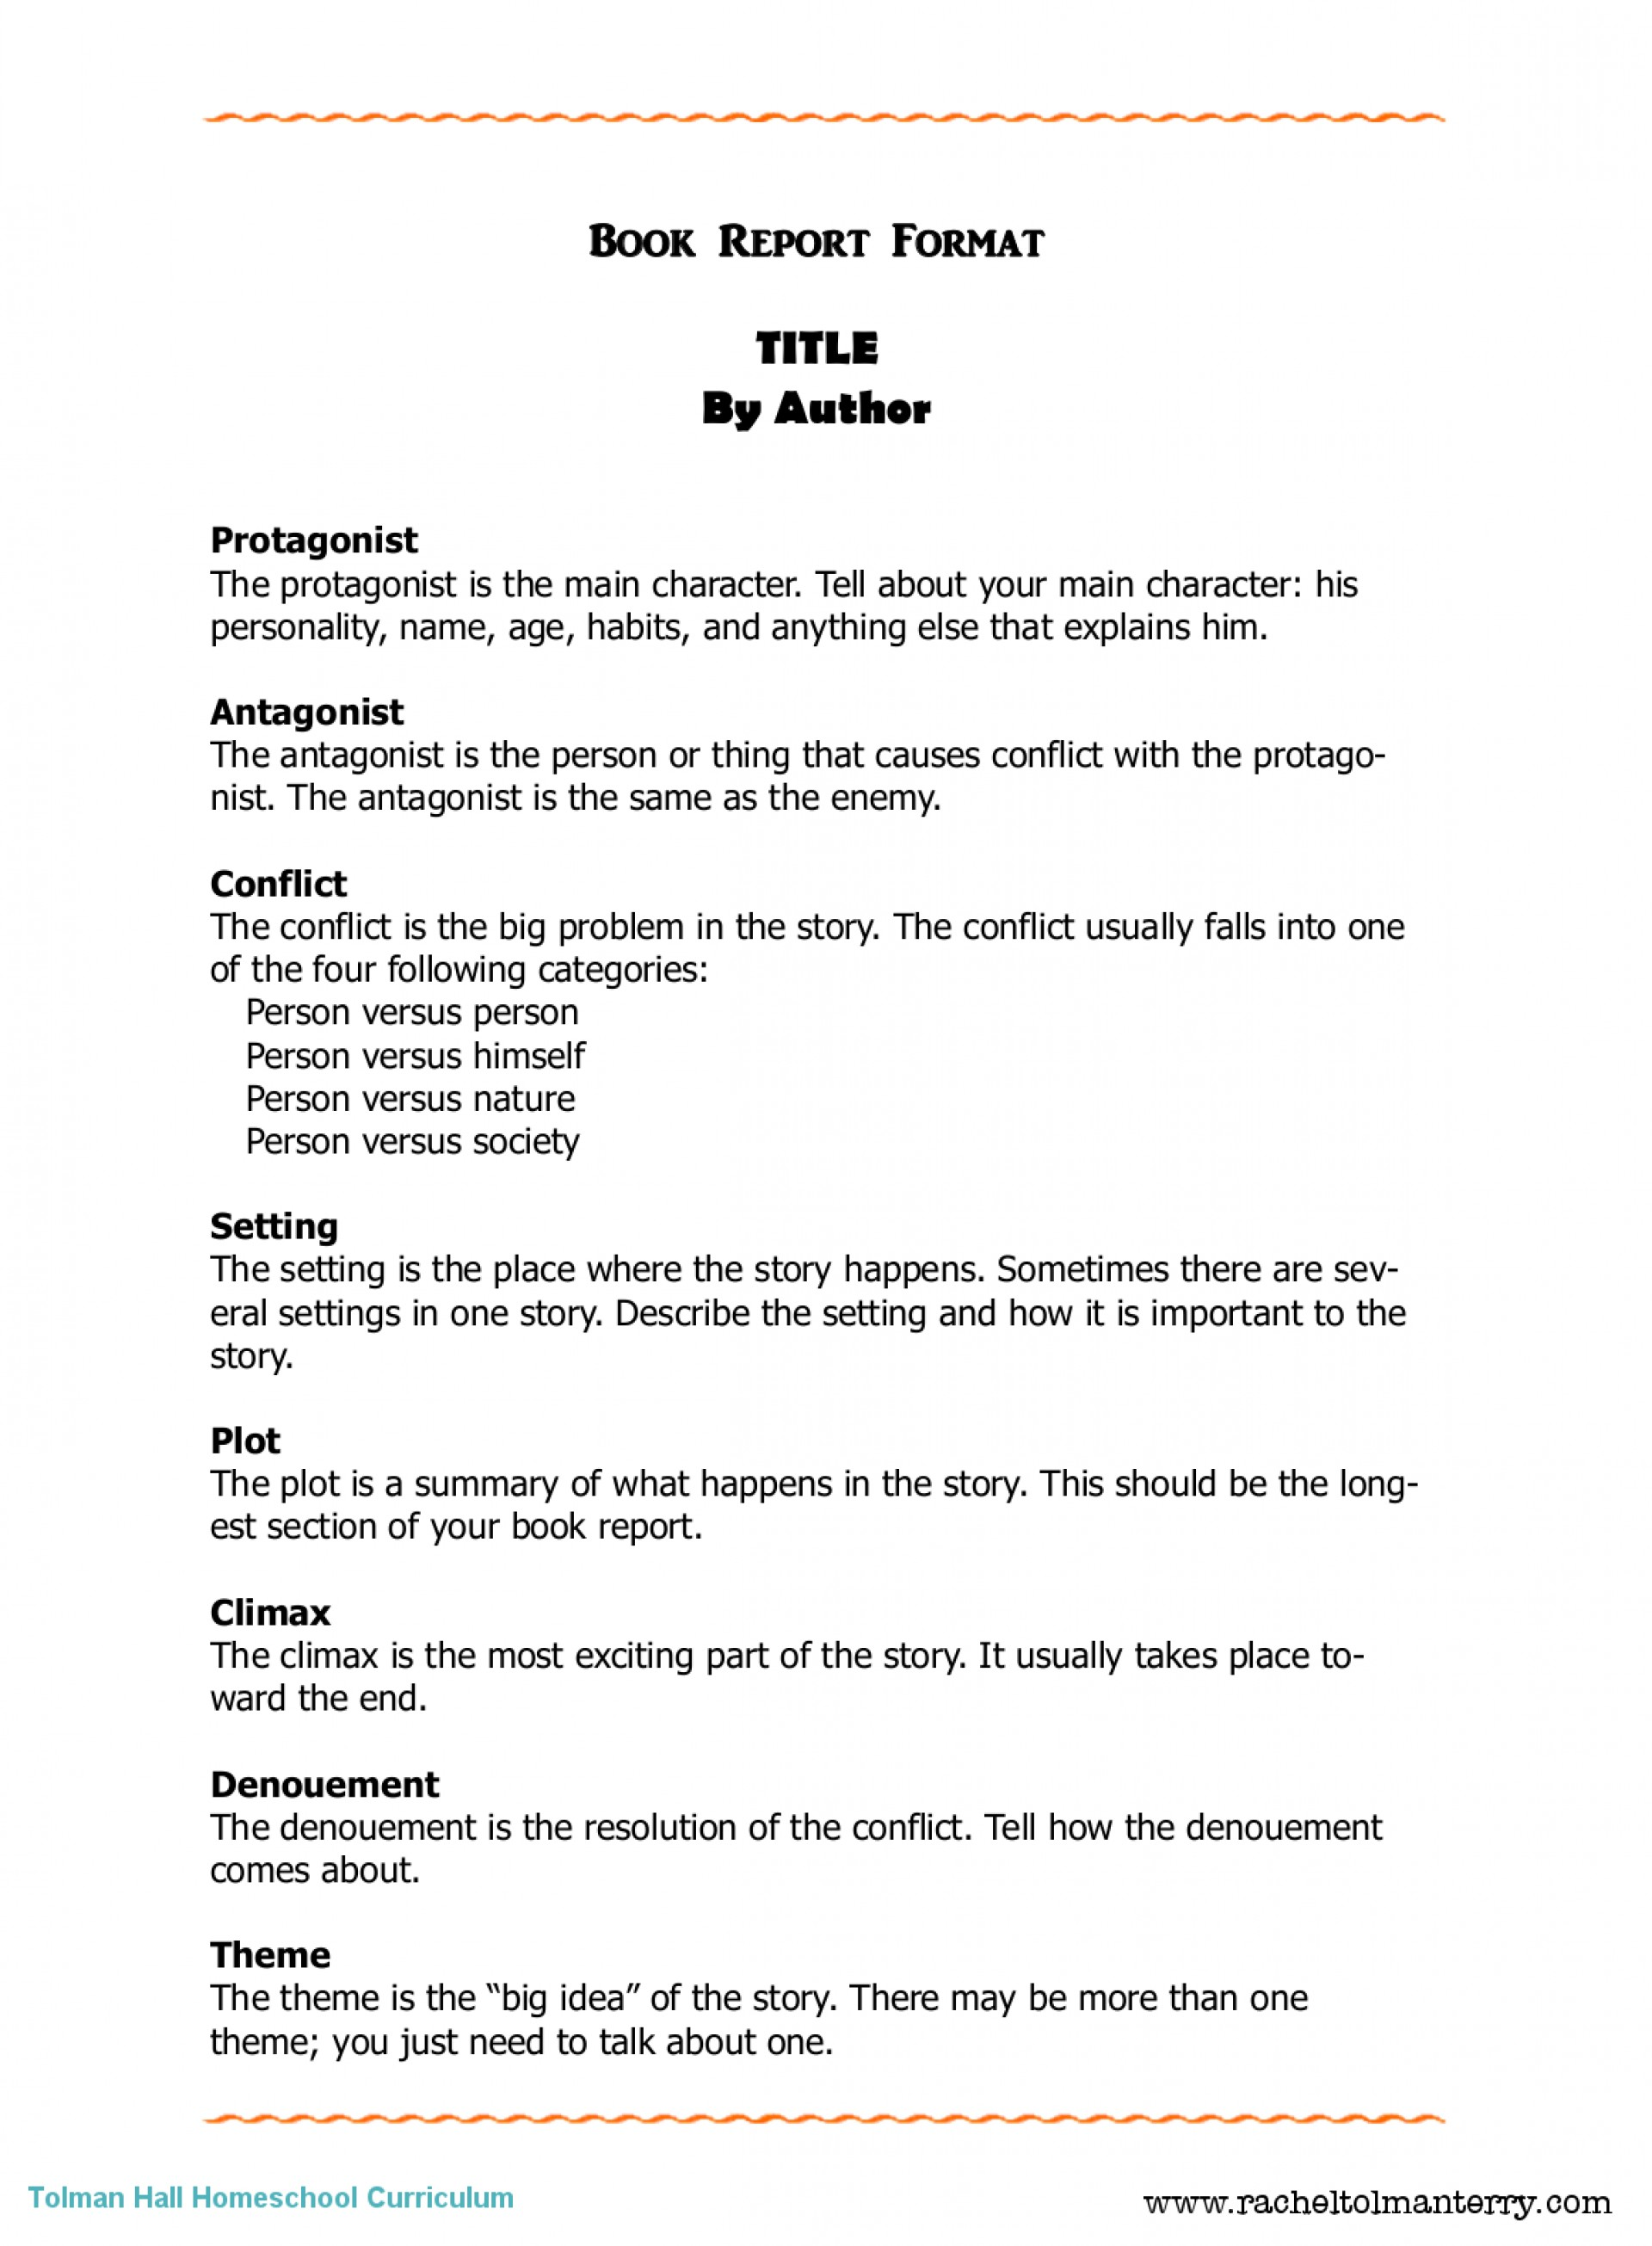 010 Essay Example College Application Examplesarvard Yale Supplementow To Write Good Bookreportformatpubl Nytimes Step By Admissions Best That Stands Out Outline About Yourself Introduction Imposing Harvard Supplement Word Count Supplemental Guide Format 1920